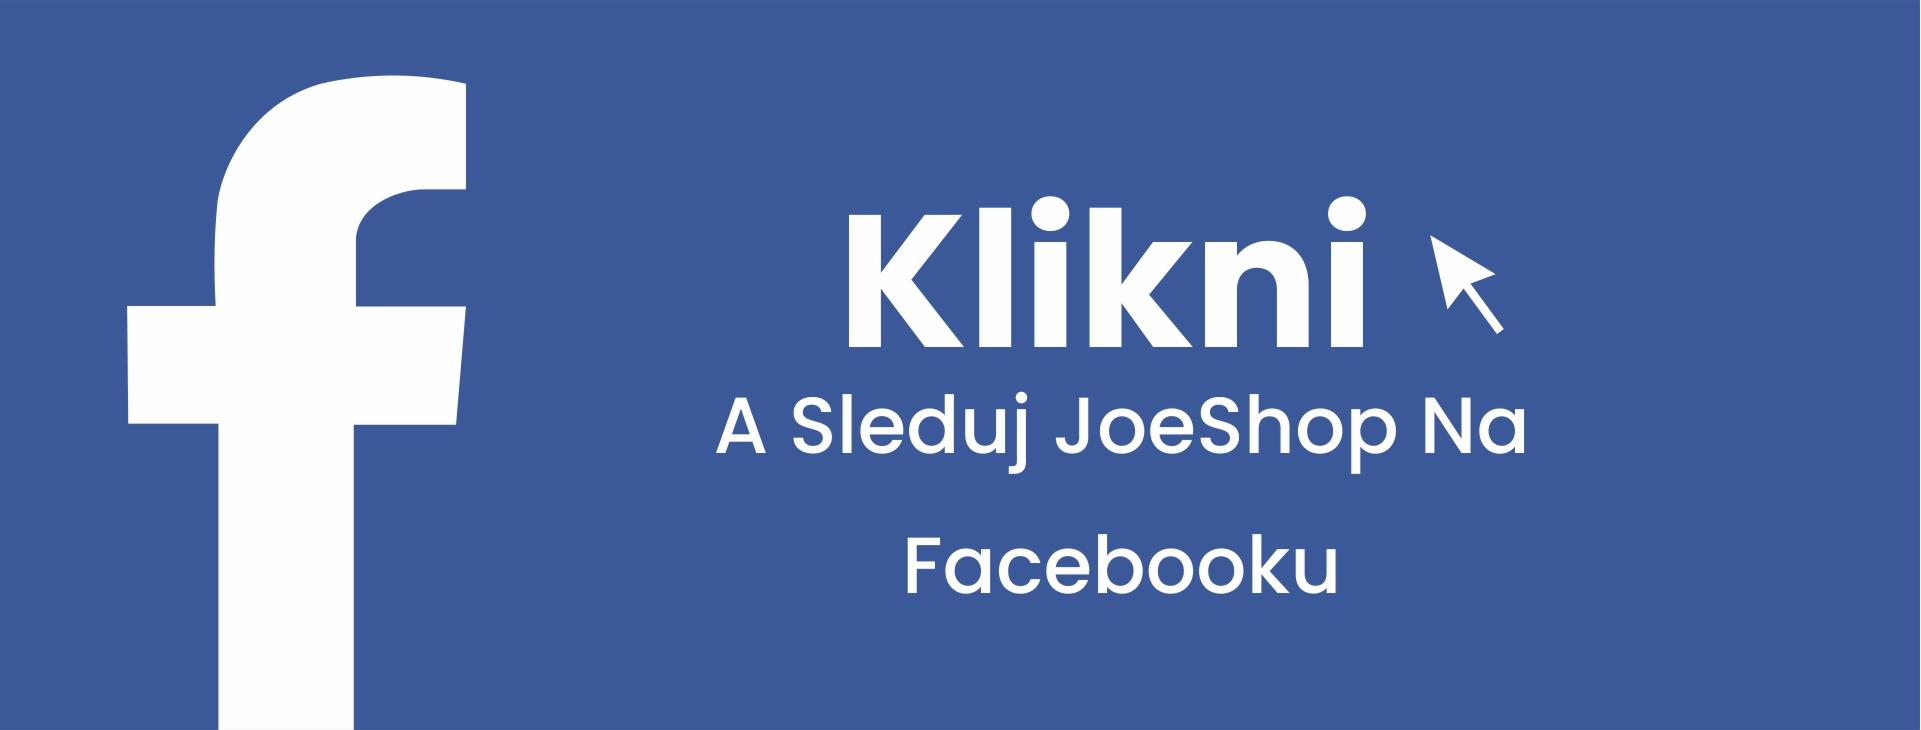 Facebook | Joeshop